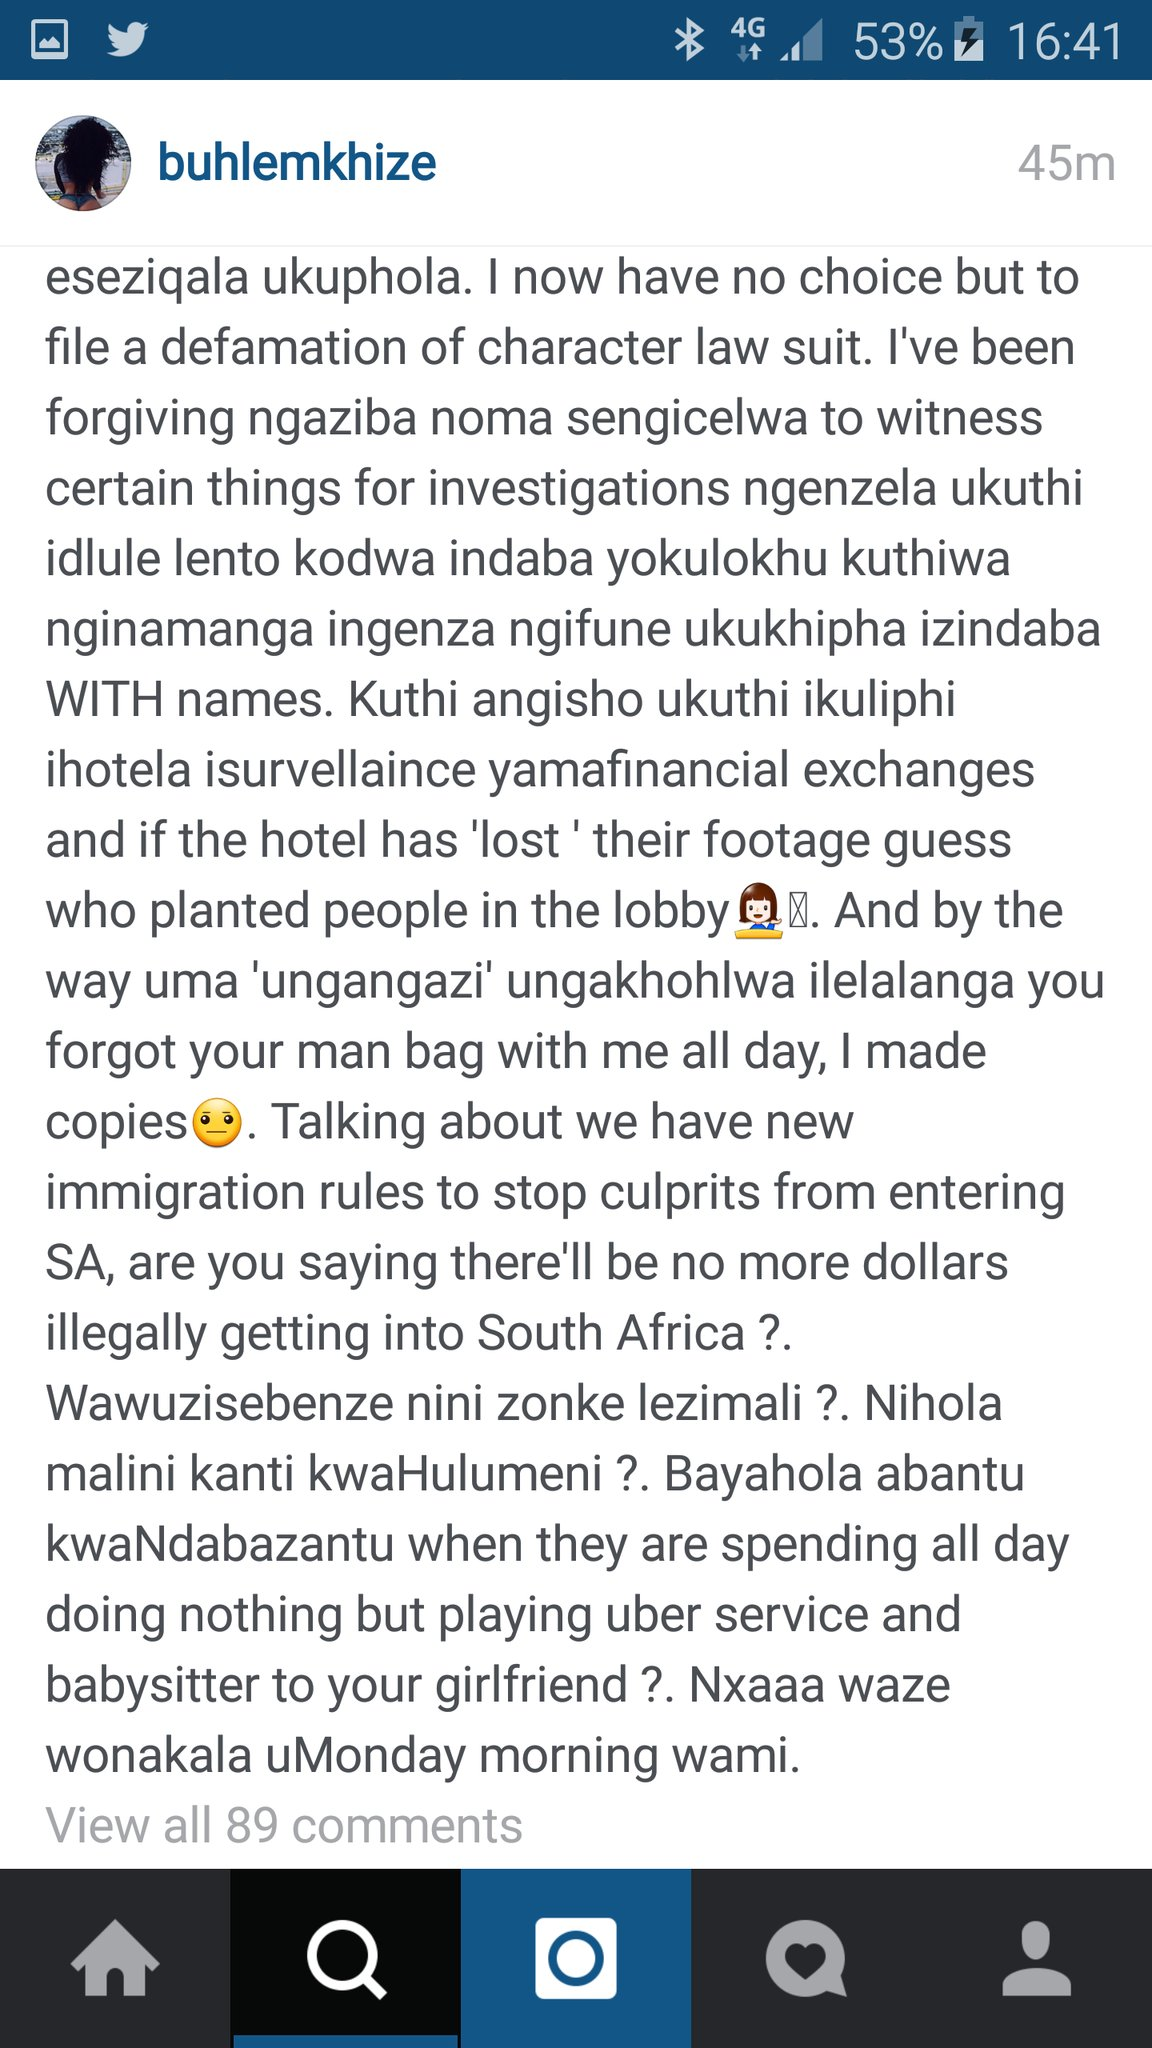 lord maqhawe on oh dear buhle mkhize vs mrsgigabyte lord maqhawe on oh dear buhle mkhize vs mrsgigabyte kodwa bamsukele ubuhle by mrs gigabyte t co cnkmx2ad9m